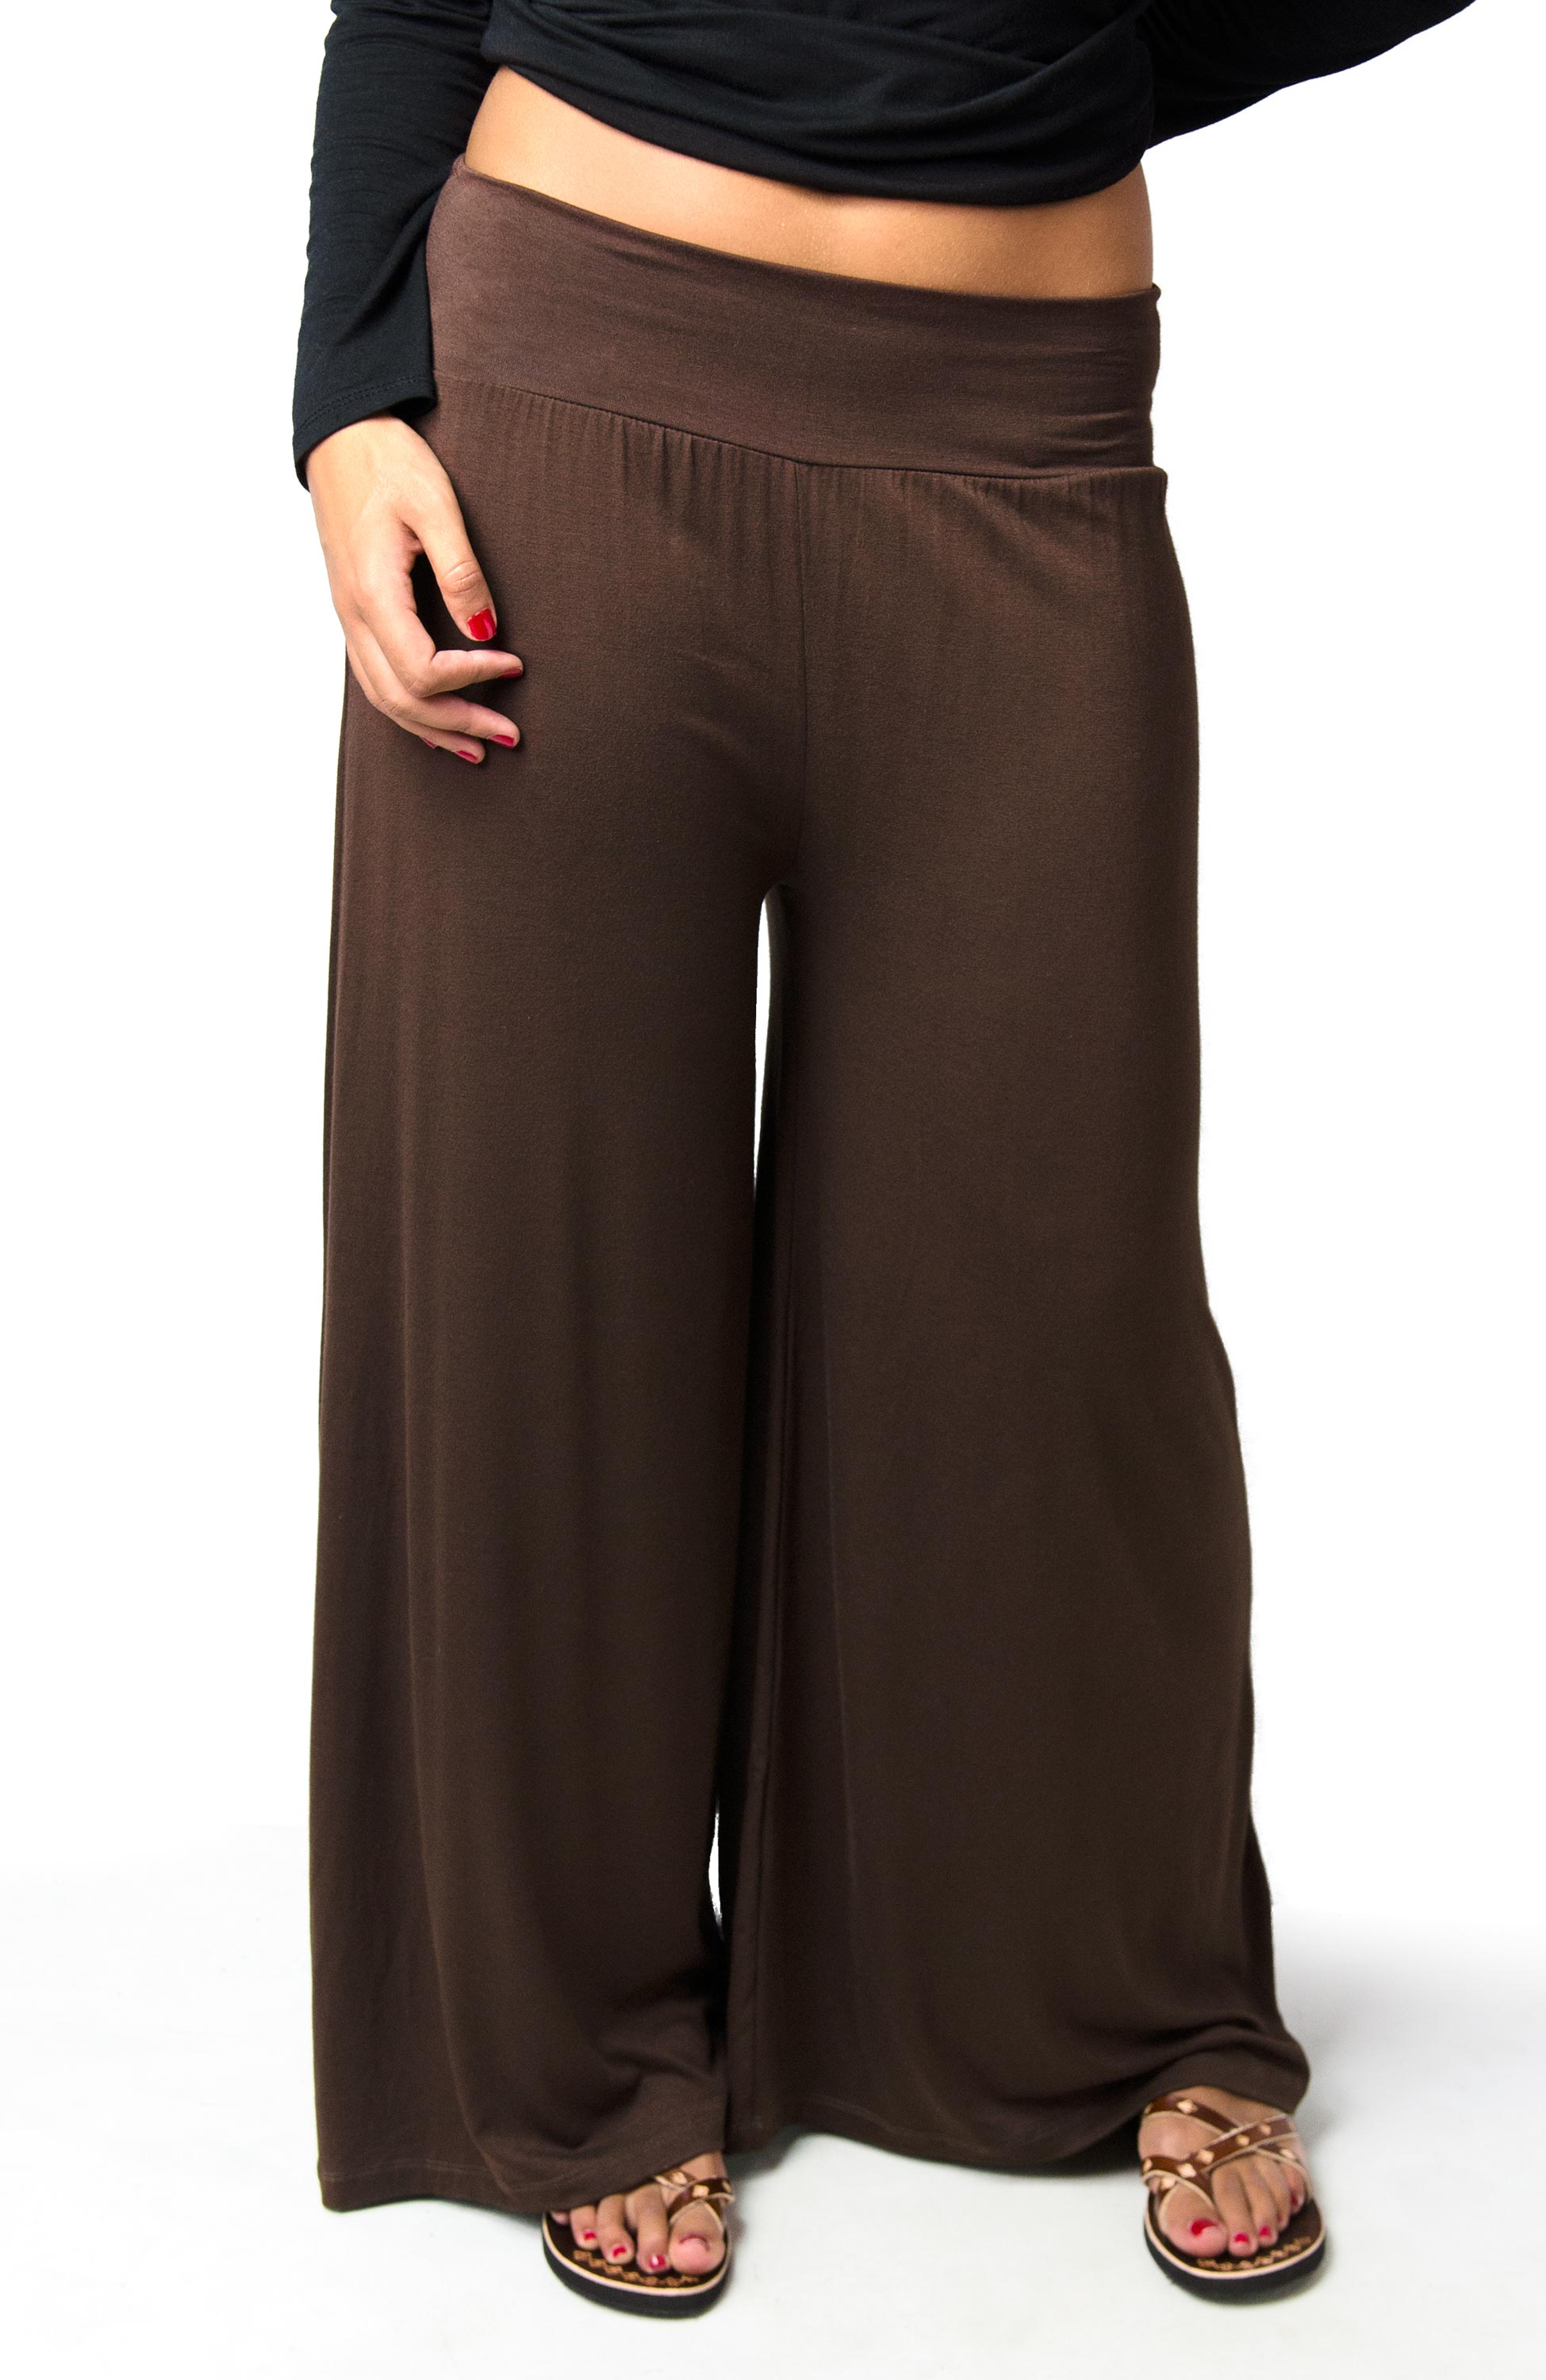 Wide Leg Pants, Solid Color, Brown - 2368-N